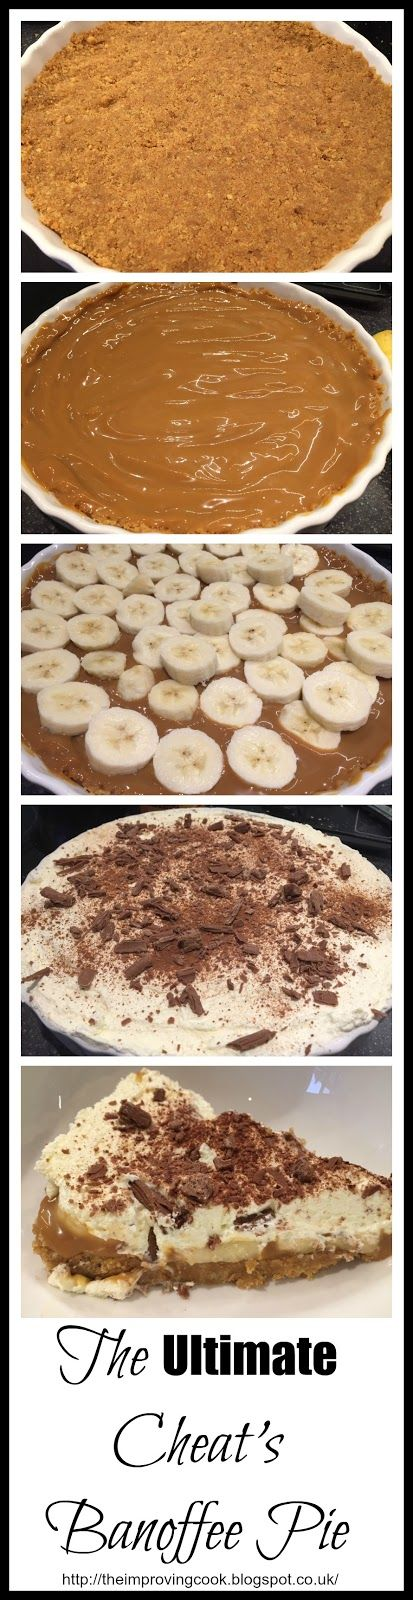 The Improving Cook Ultimate Cheat's Banoffee Pie